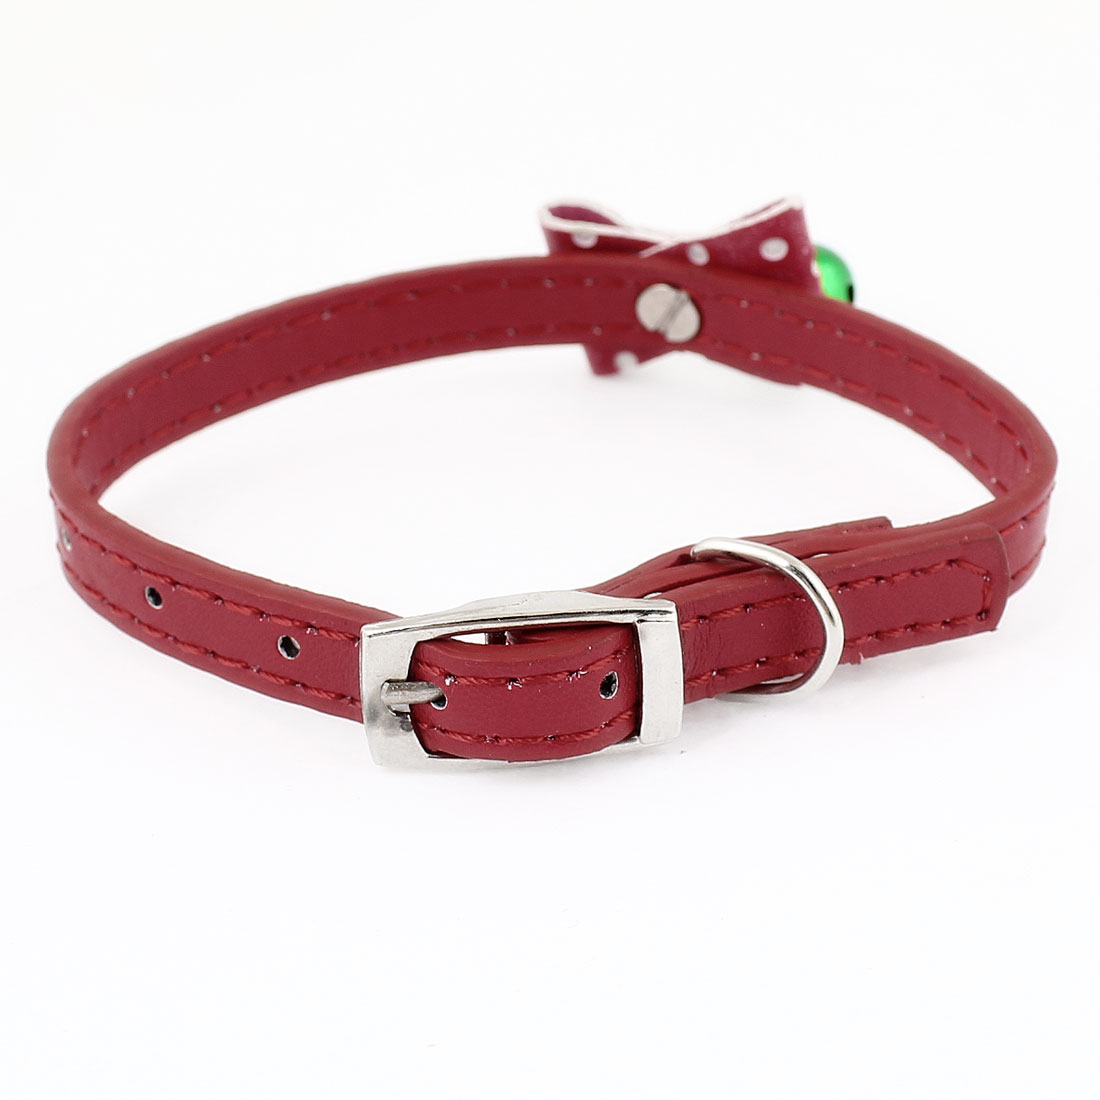 Red Faux Leather Bowknot Green Bell Decor Adjustable Dog Doggy Puppy Collar Rope